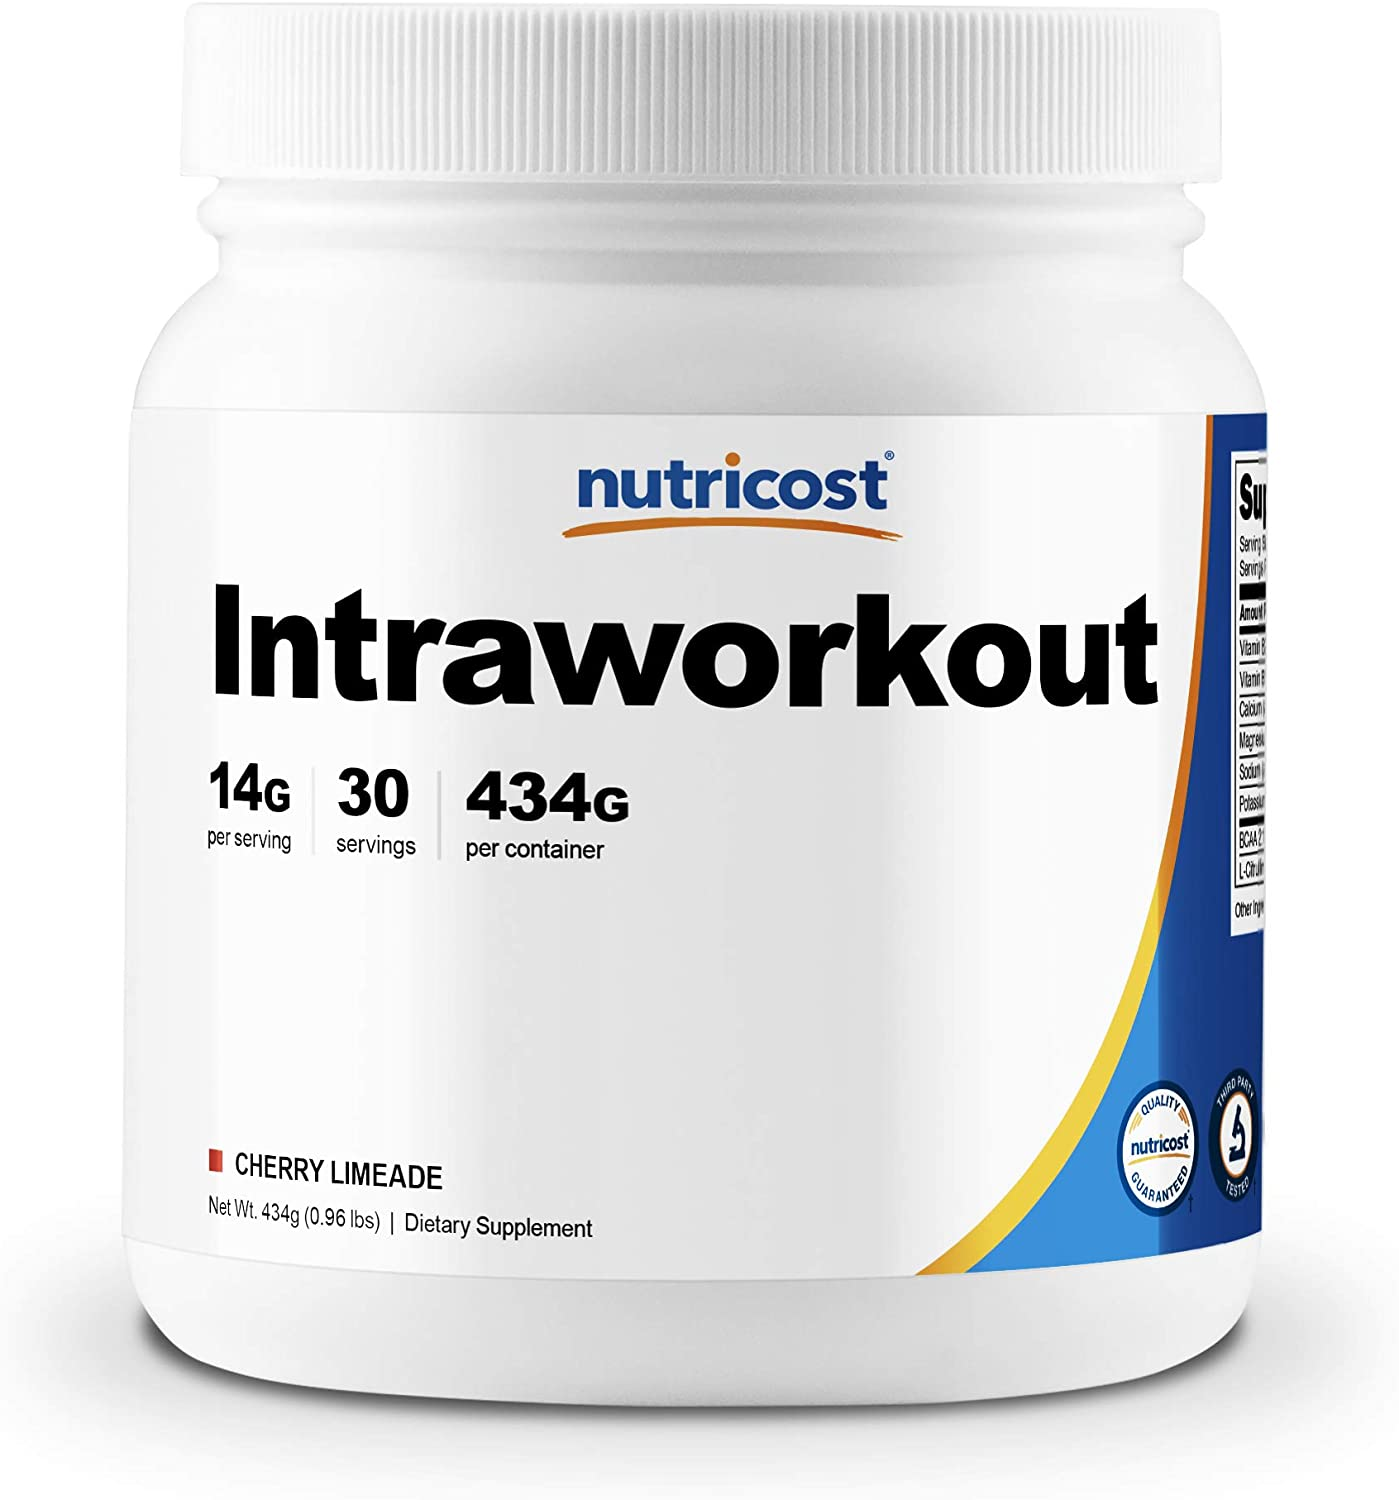 Nutricost Intra Workout Powder (Cherry Limeade) 30 Servings - Gluten Free and Non-GMO Intraworkout Supplement